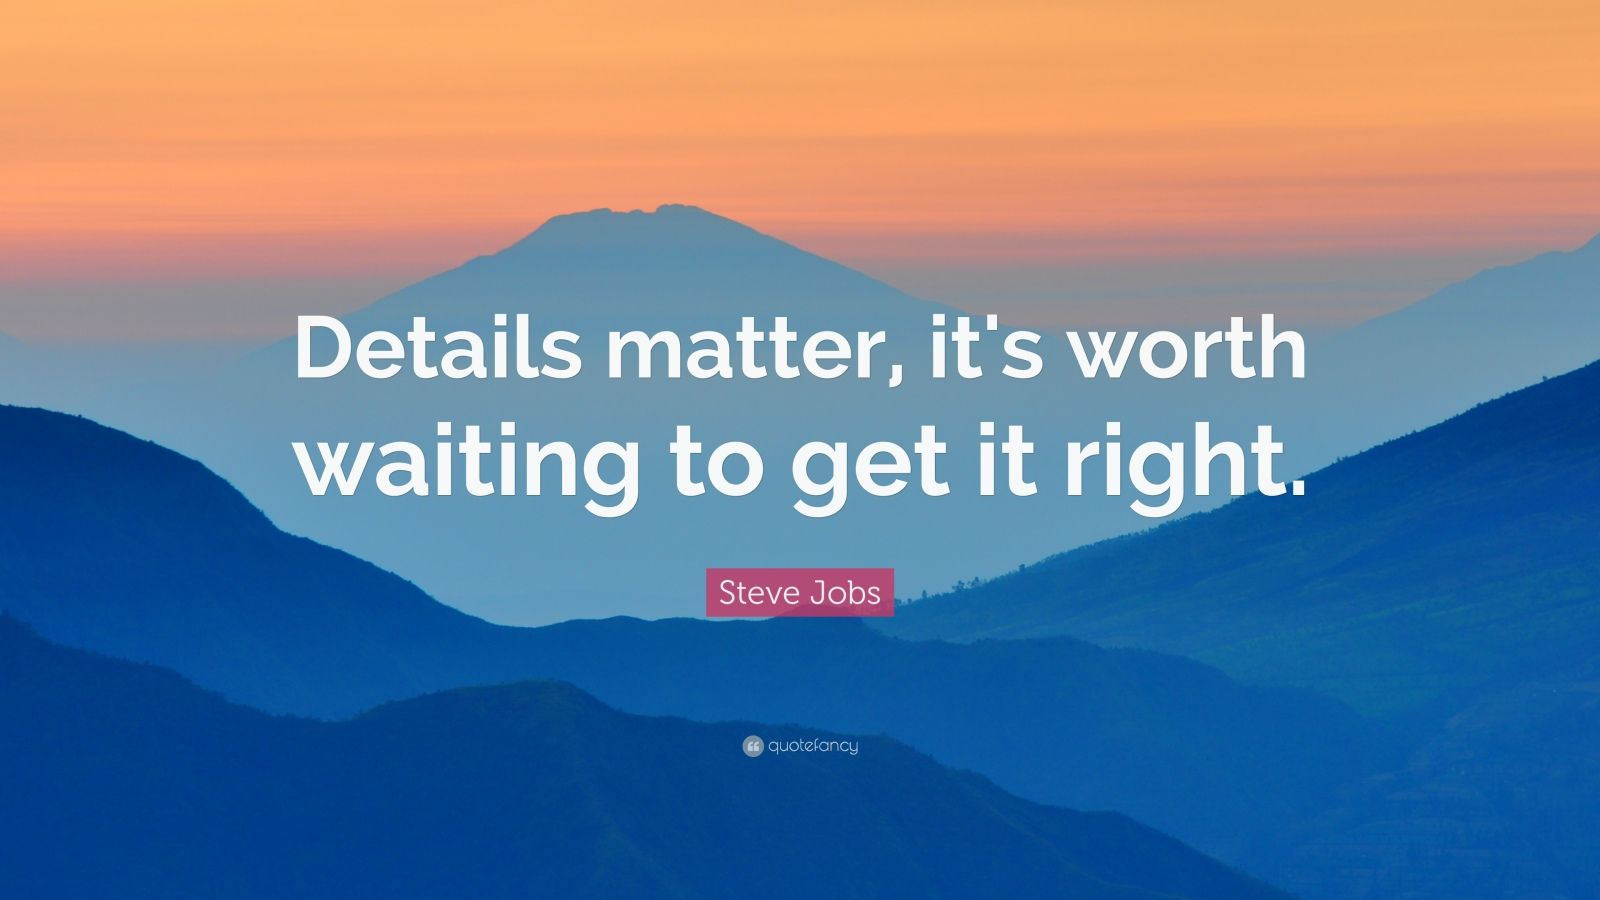 Steve Jobs Wallpaper Quotes Steve Jobs Quote Details Matter It S Worth Waiting To